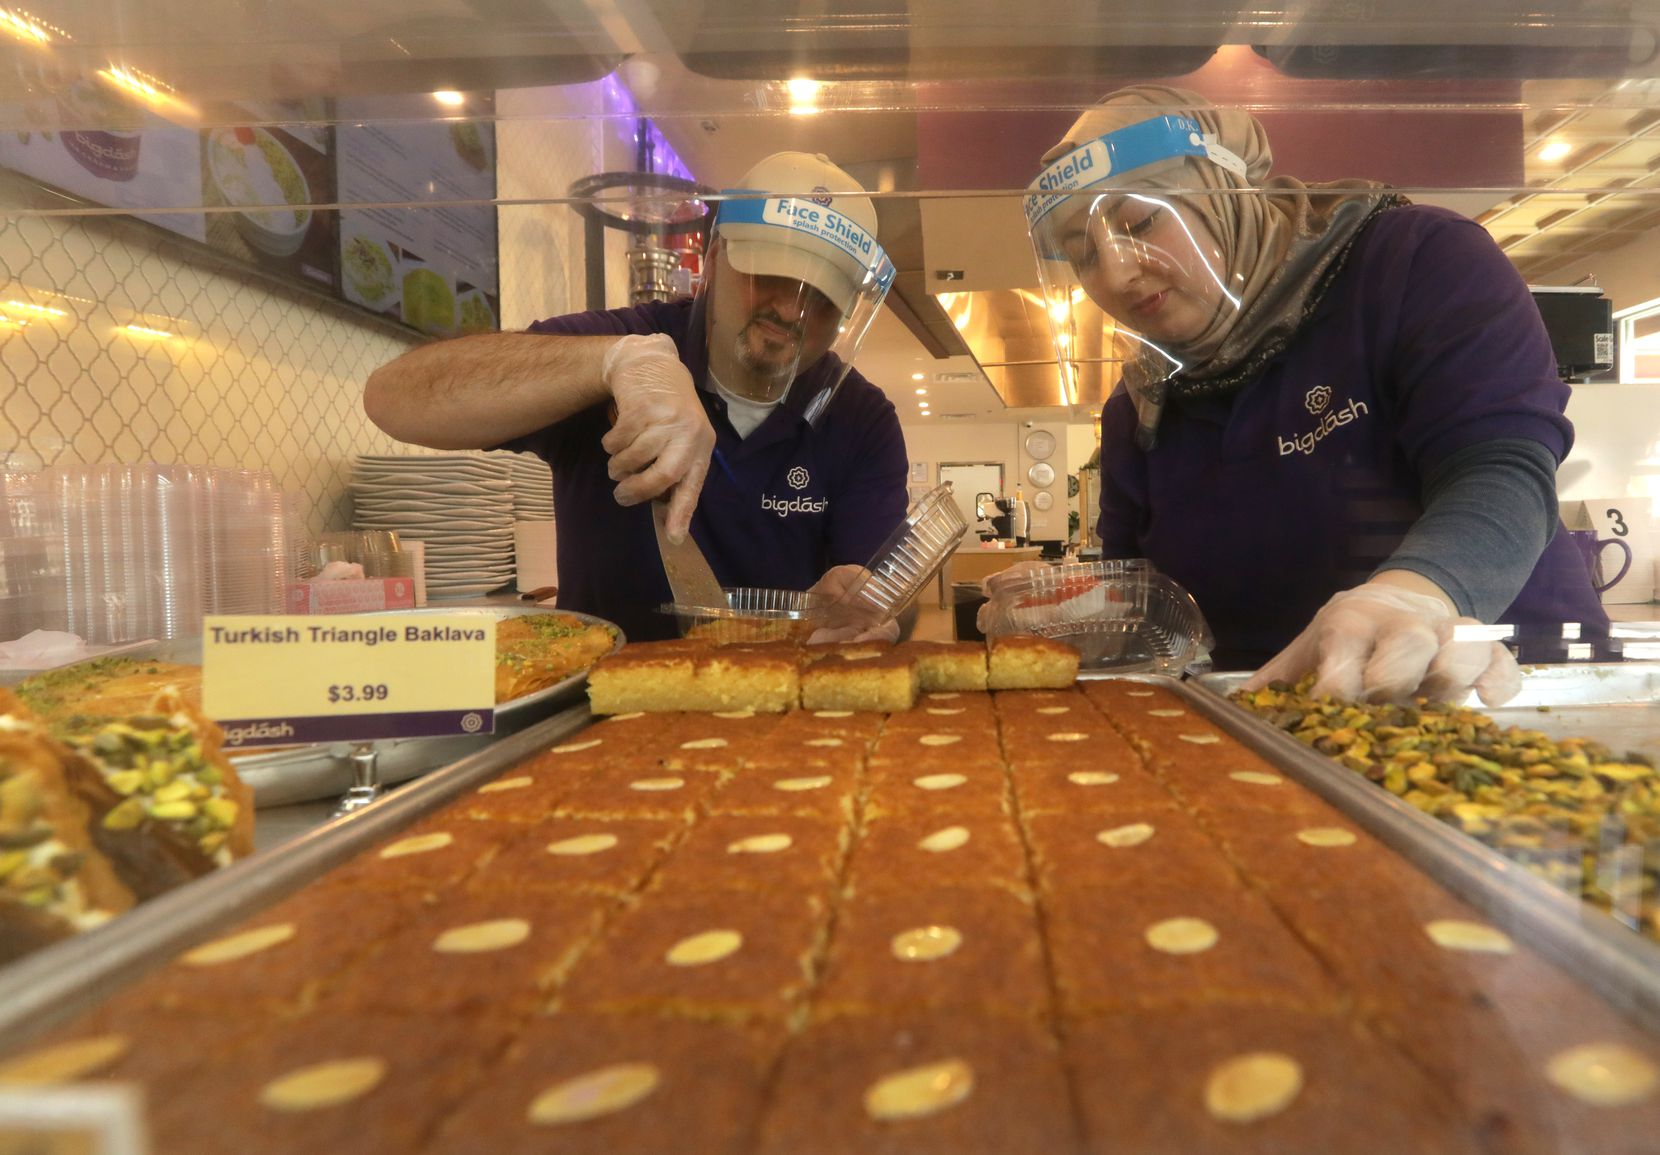 For Kareem Alrefaai (left) and Asmaa Khattab, who own Bigdash, an Arabic ice cream and pastries shop with branches in Richardson and Frisco, Ramadan is one of their busiest times of the year. (Jason Janik/Special Contributor)